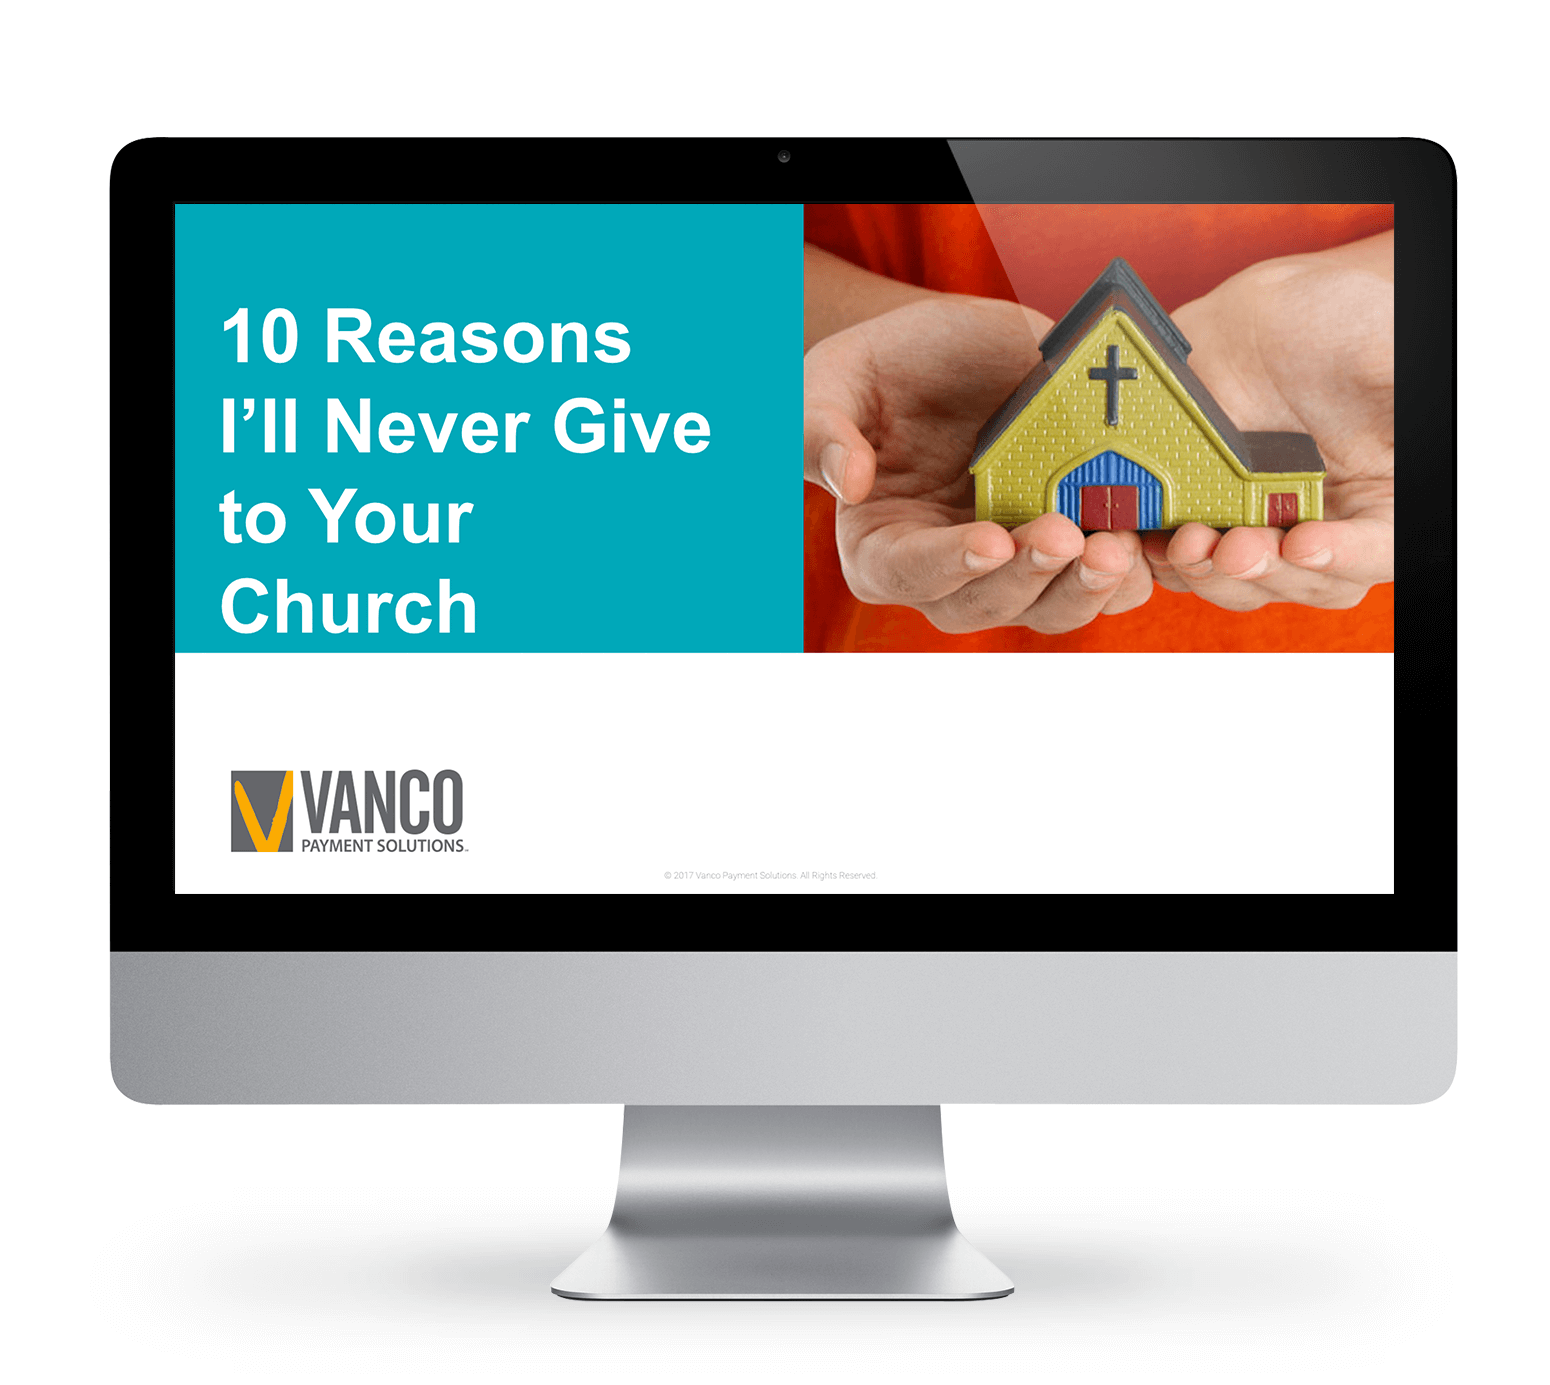 10 Reasons I'll Never Give to Your Church